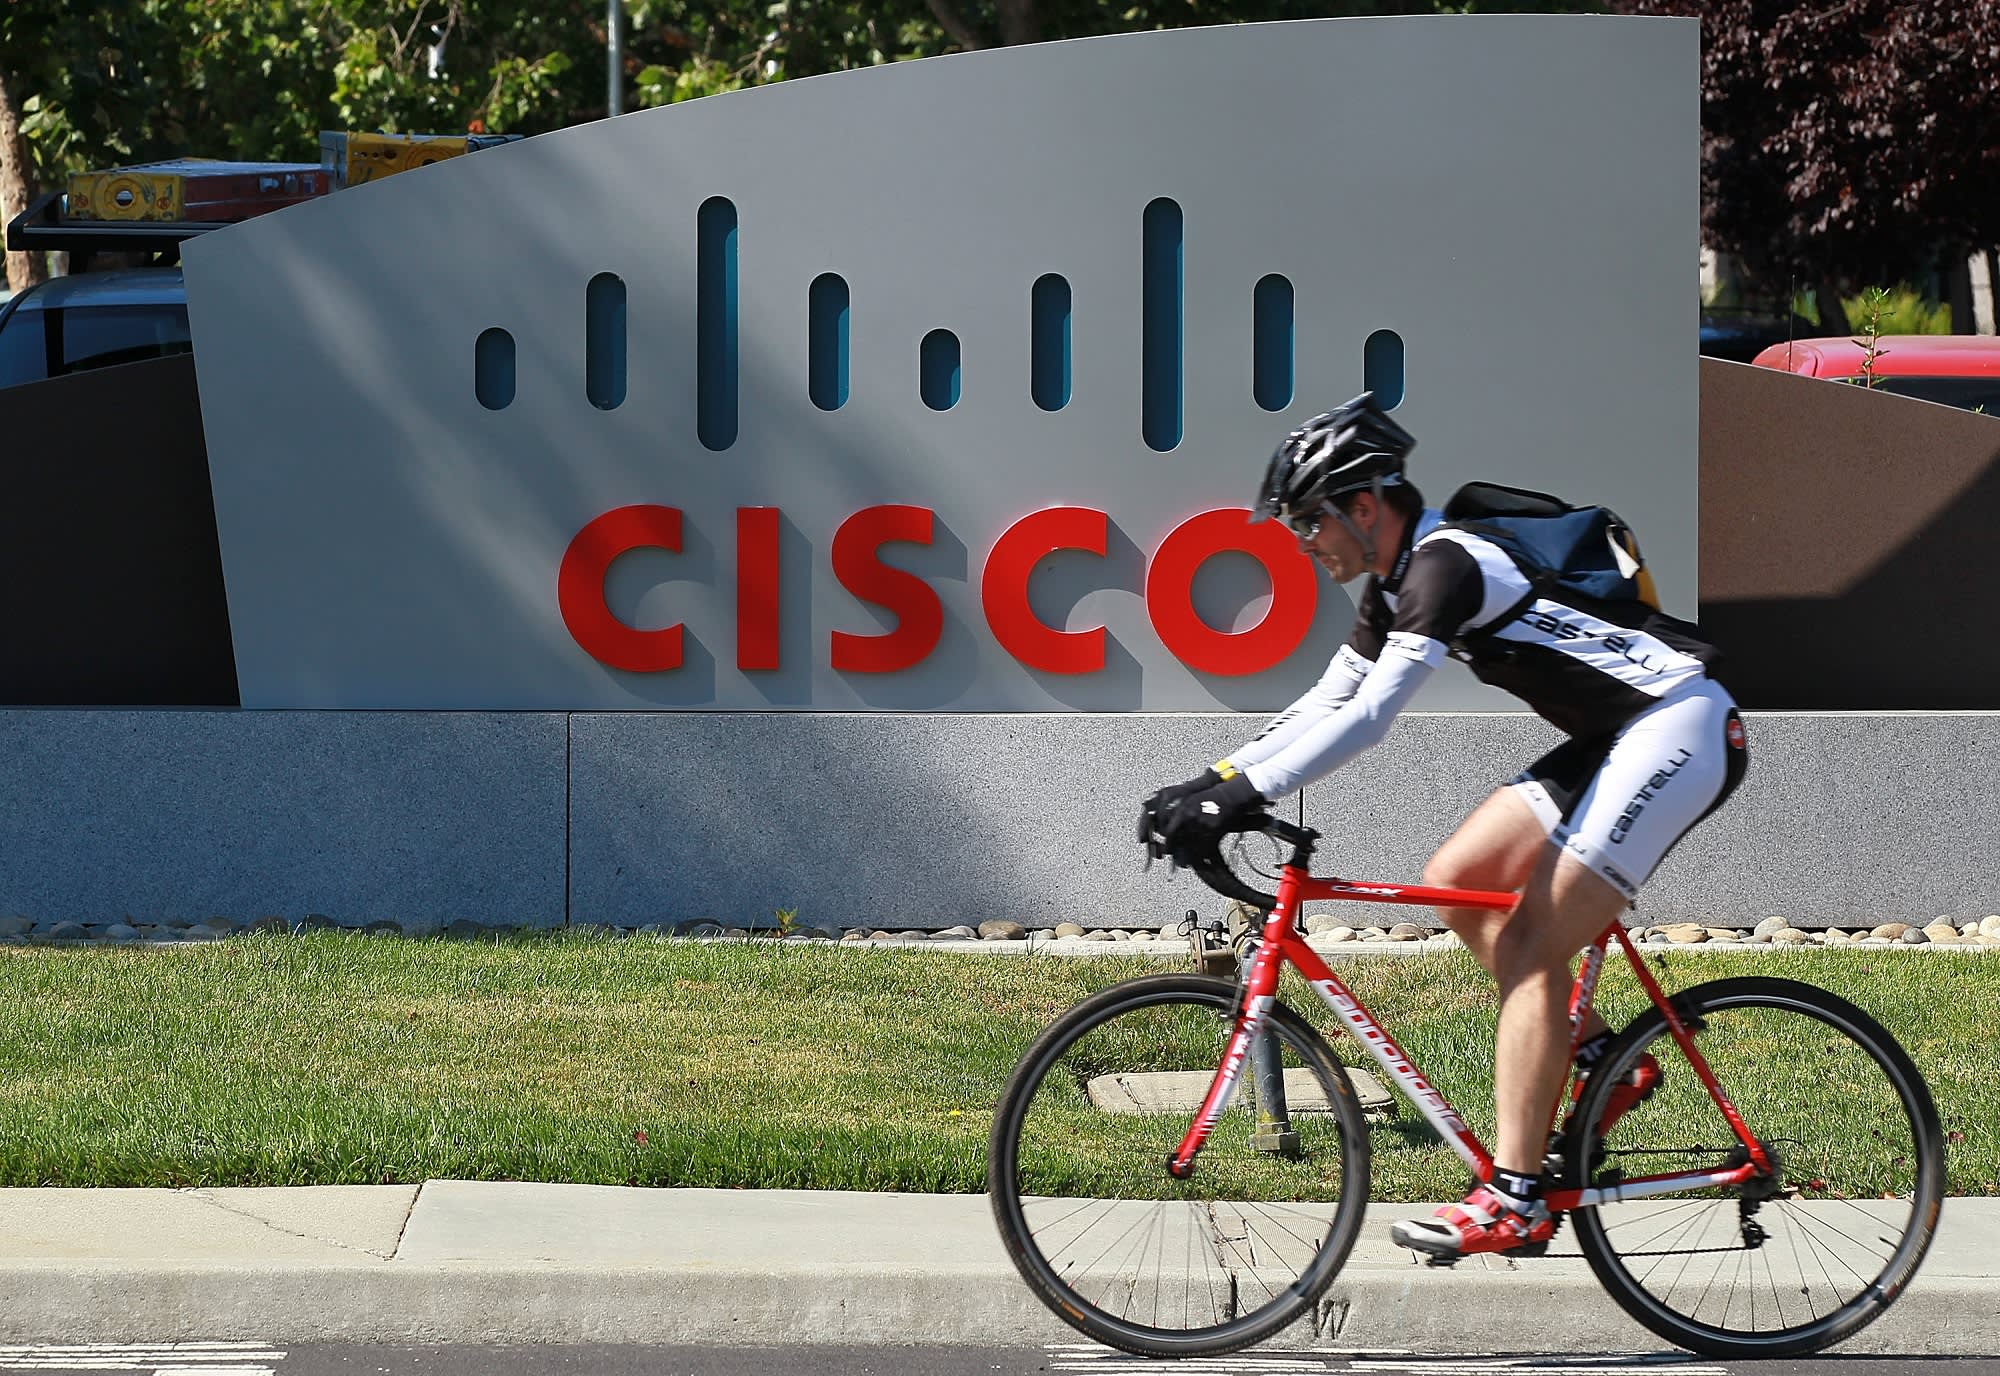 Stocks making the biggest moves after hours: Cisco, American Outdoor Brands & Ping Identity